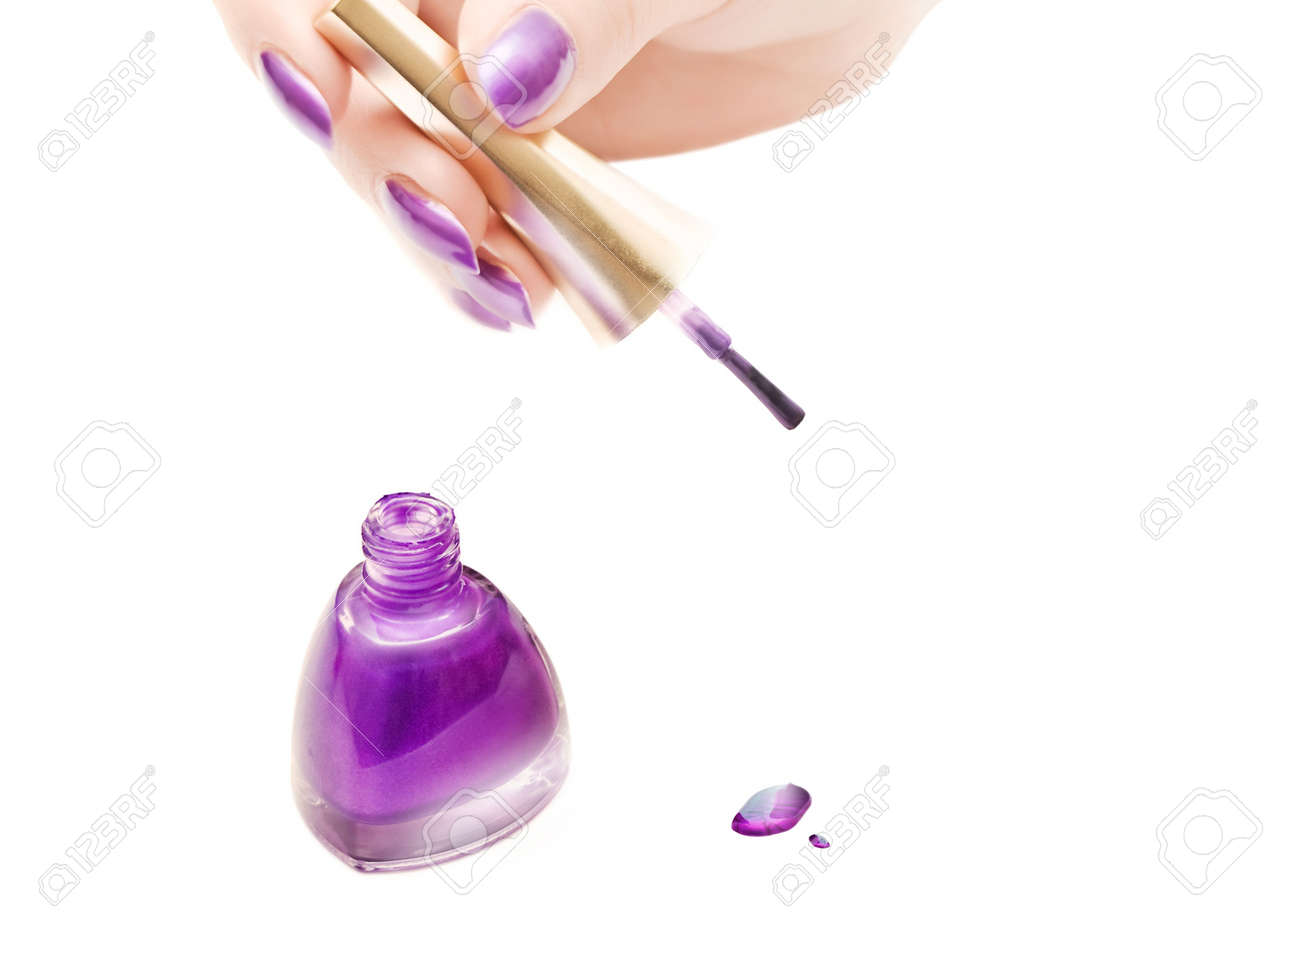 manicure: nail polish and woman hand over white background with copyspace Stock Photo - 11243286